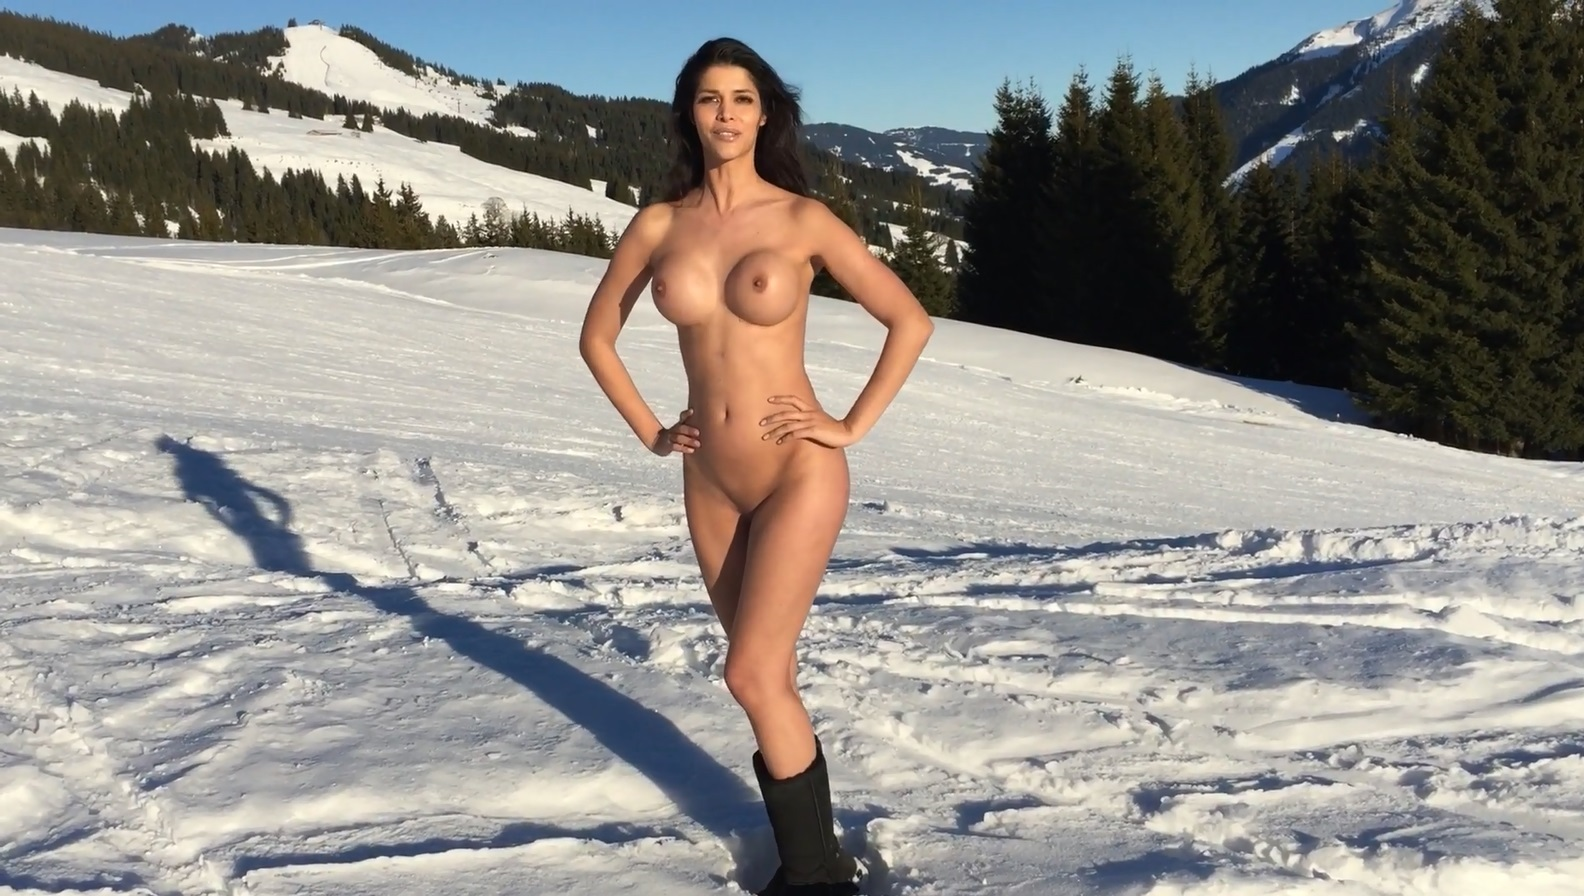 Look for nude in public snowboard speaking